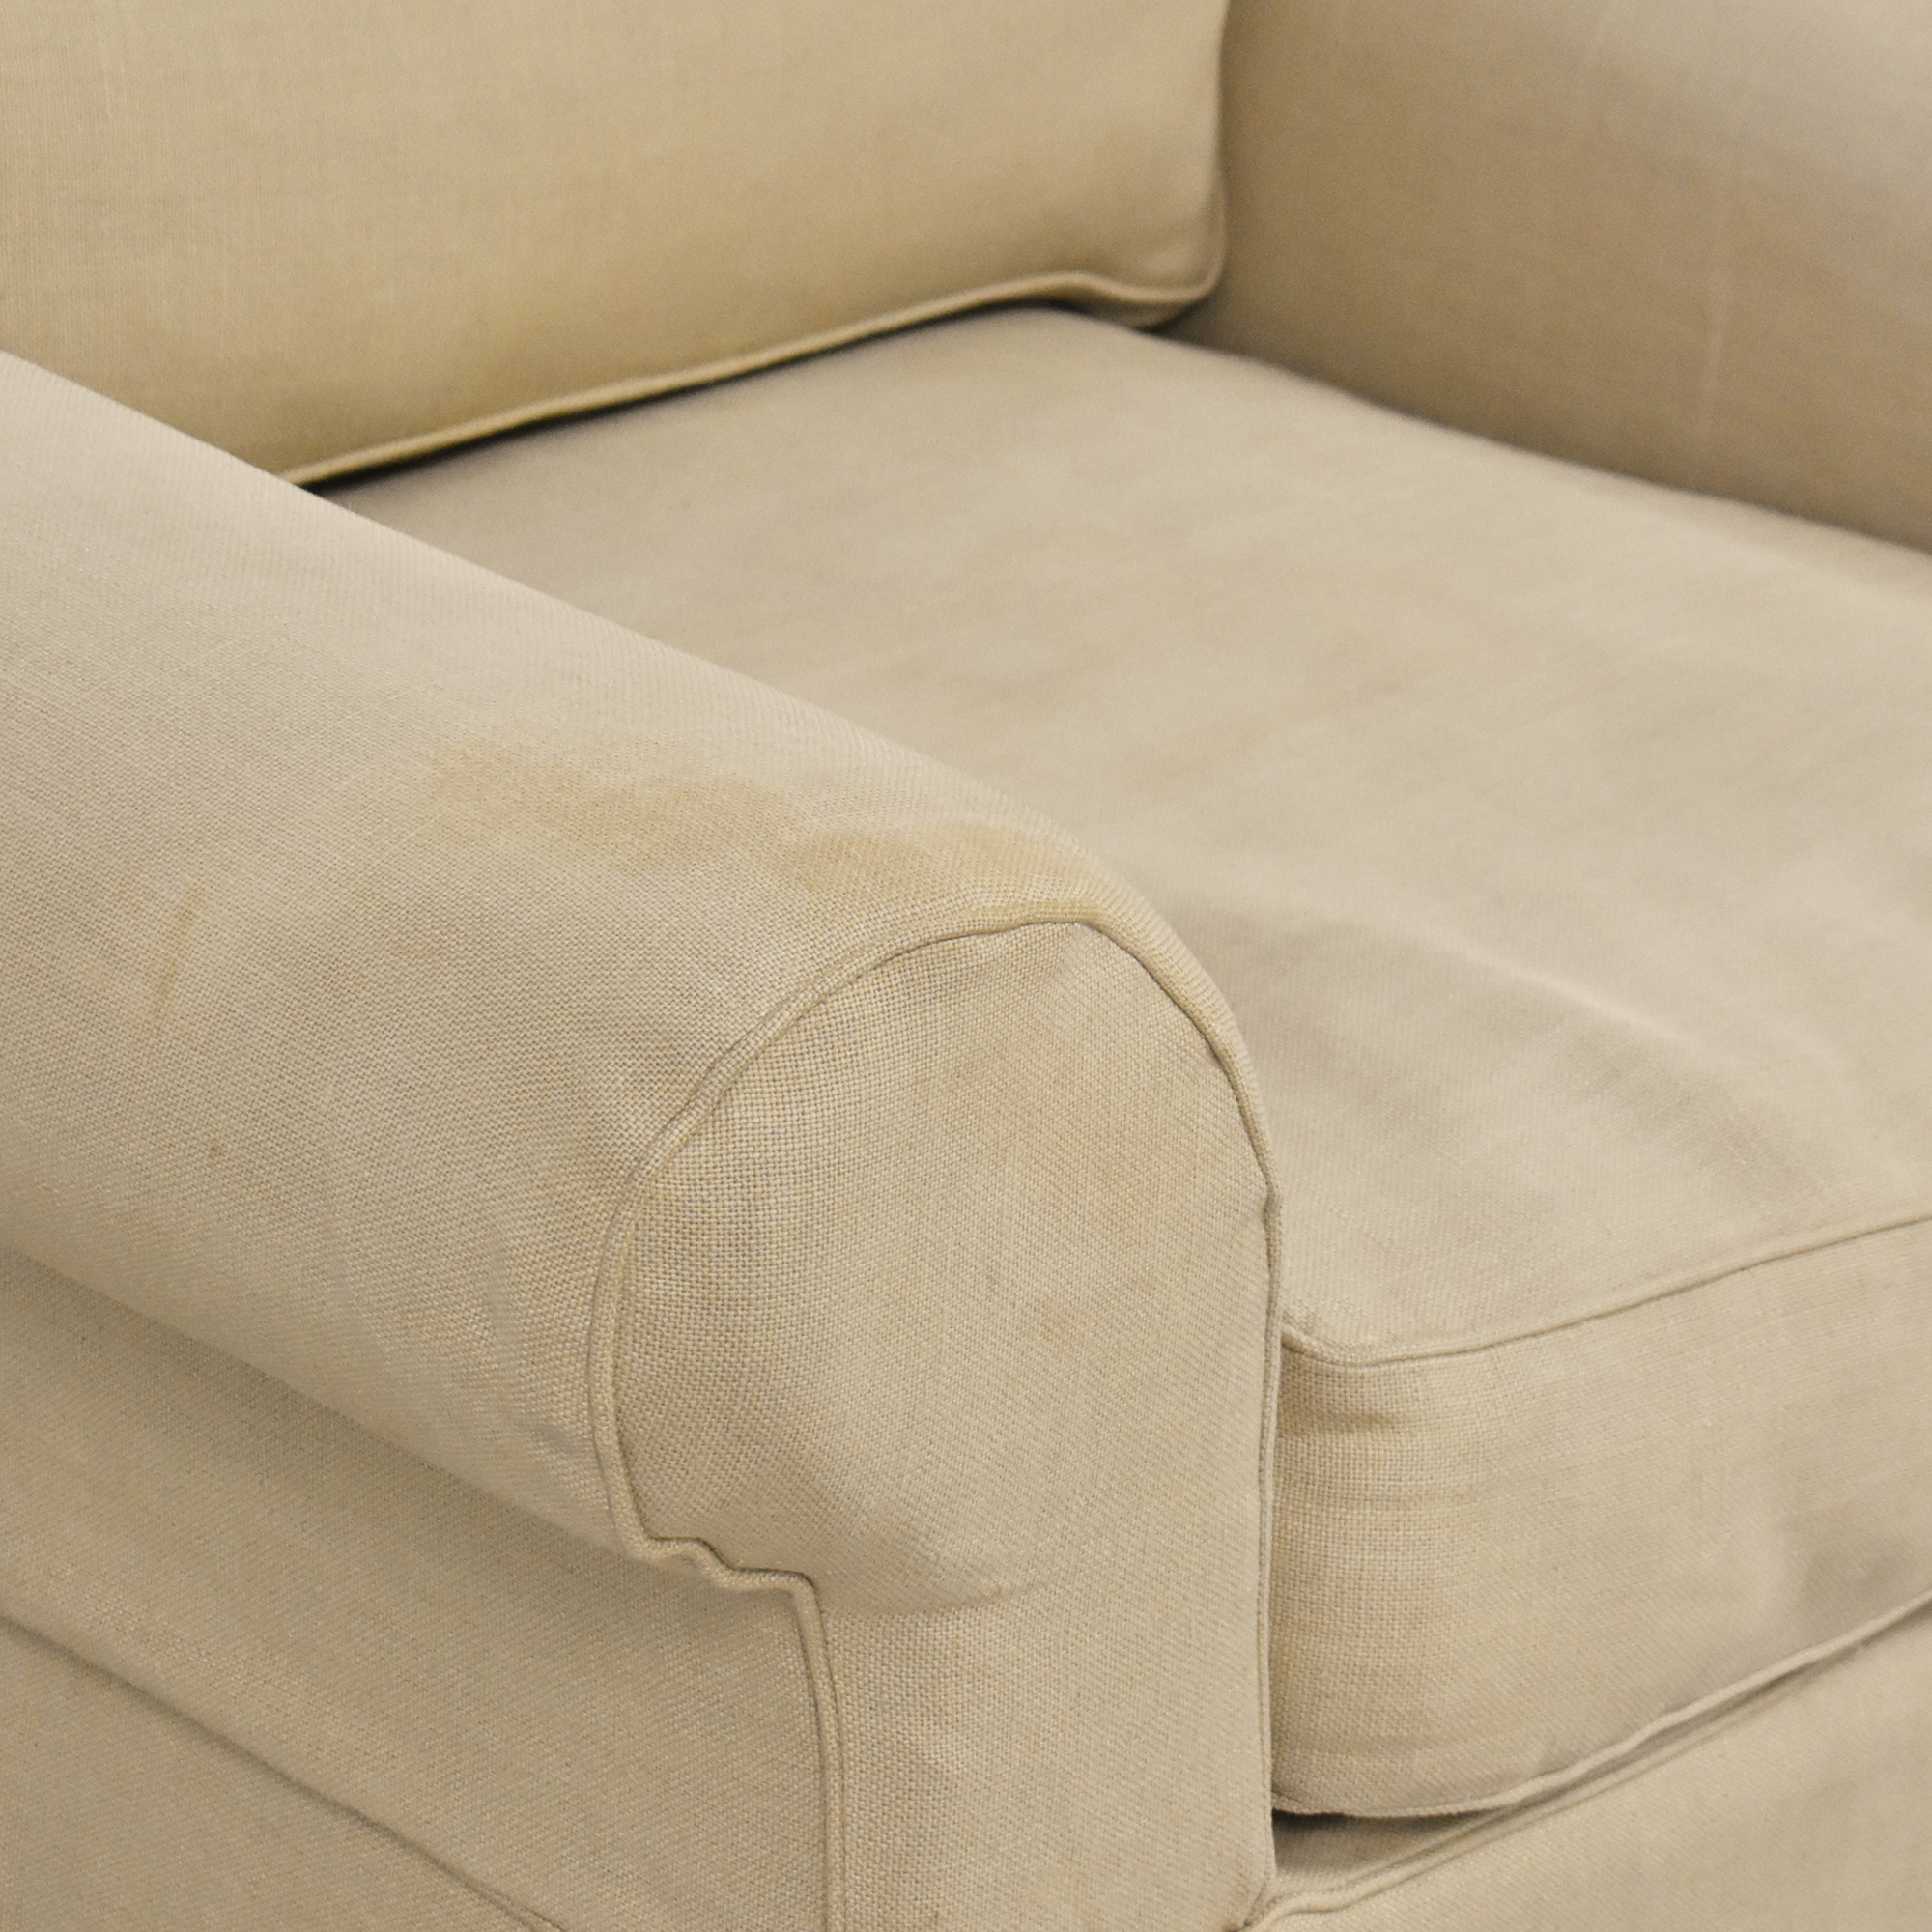 Restoration Hardware Restoration Hardware Grand-Scale Roll Arm Chair dimensions